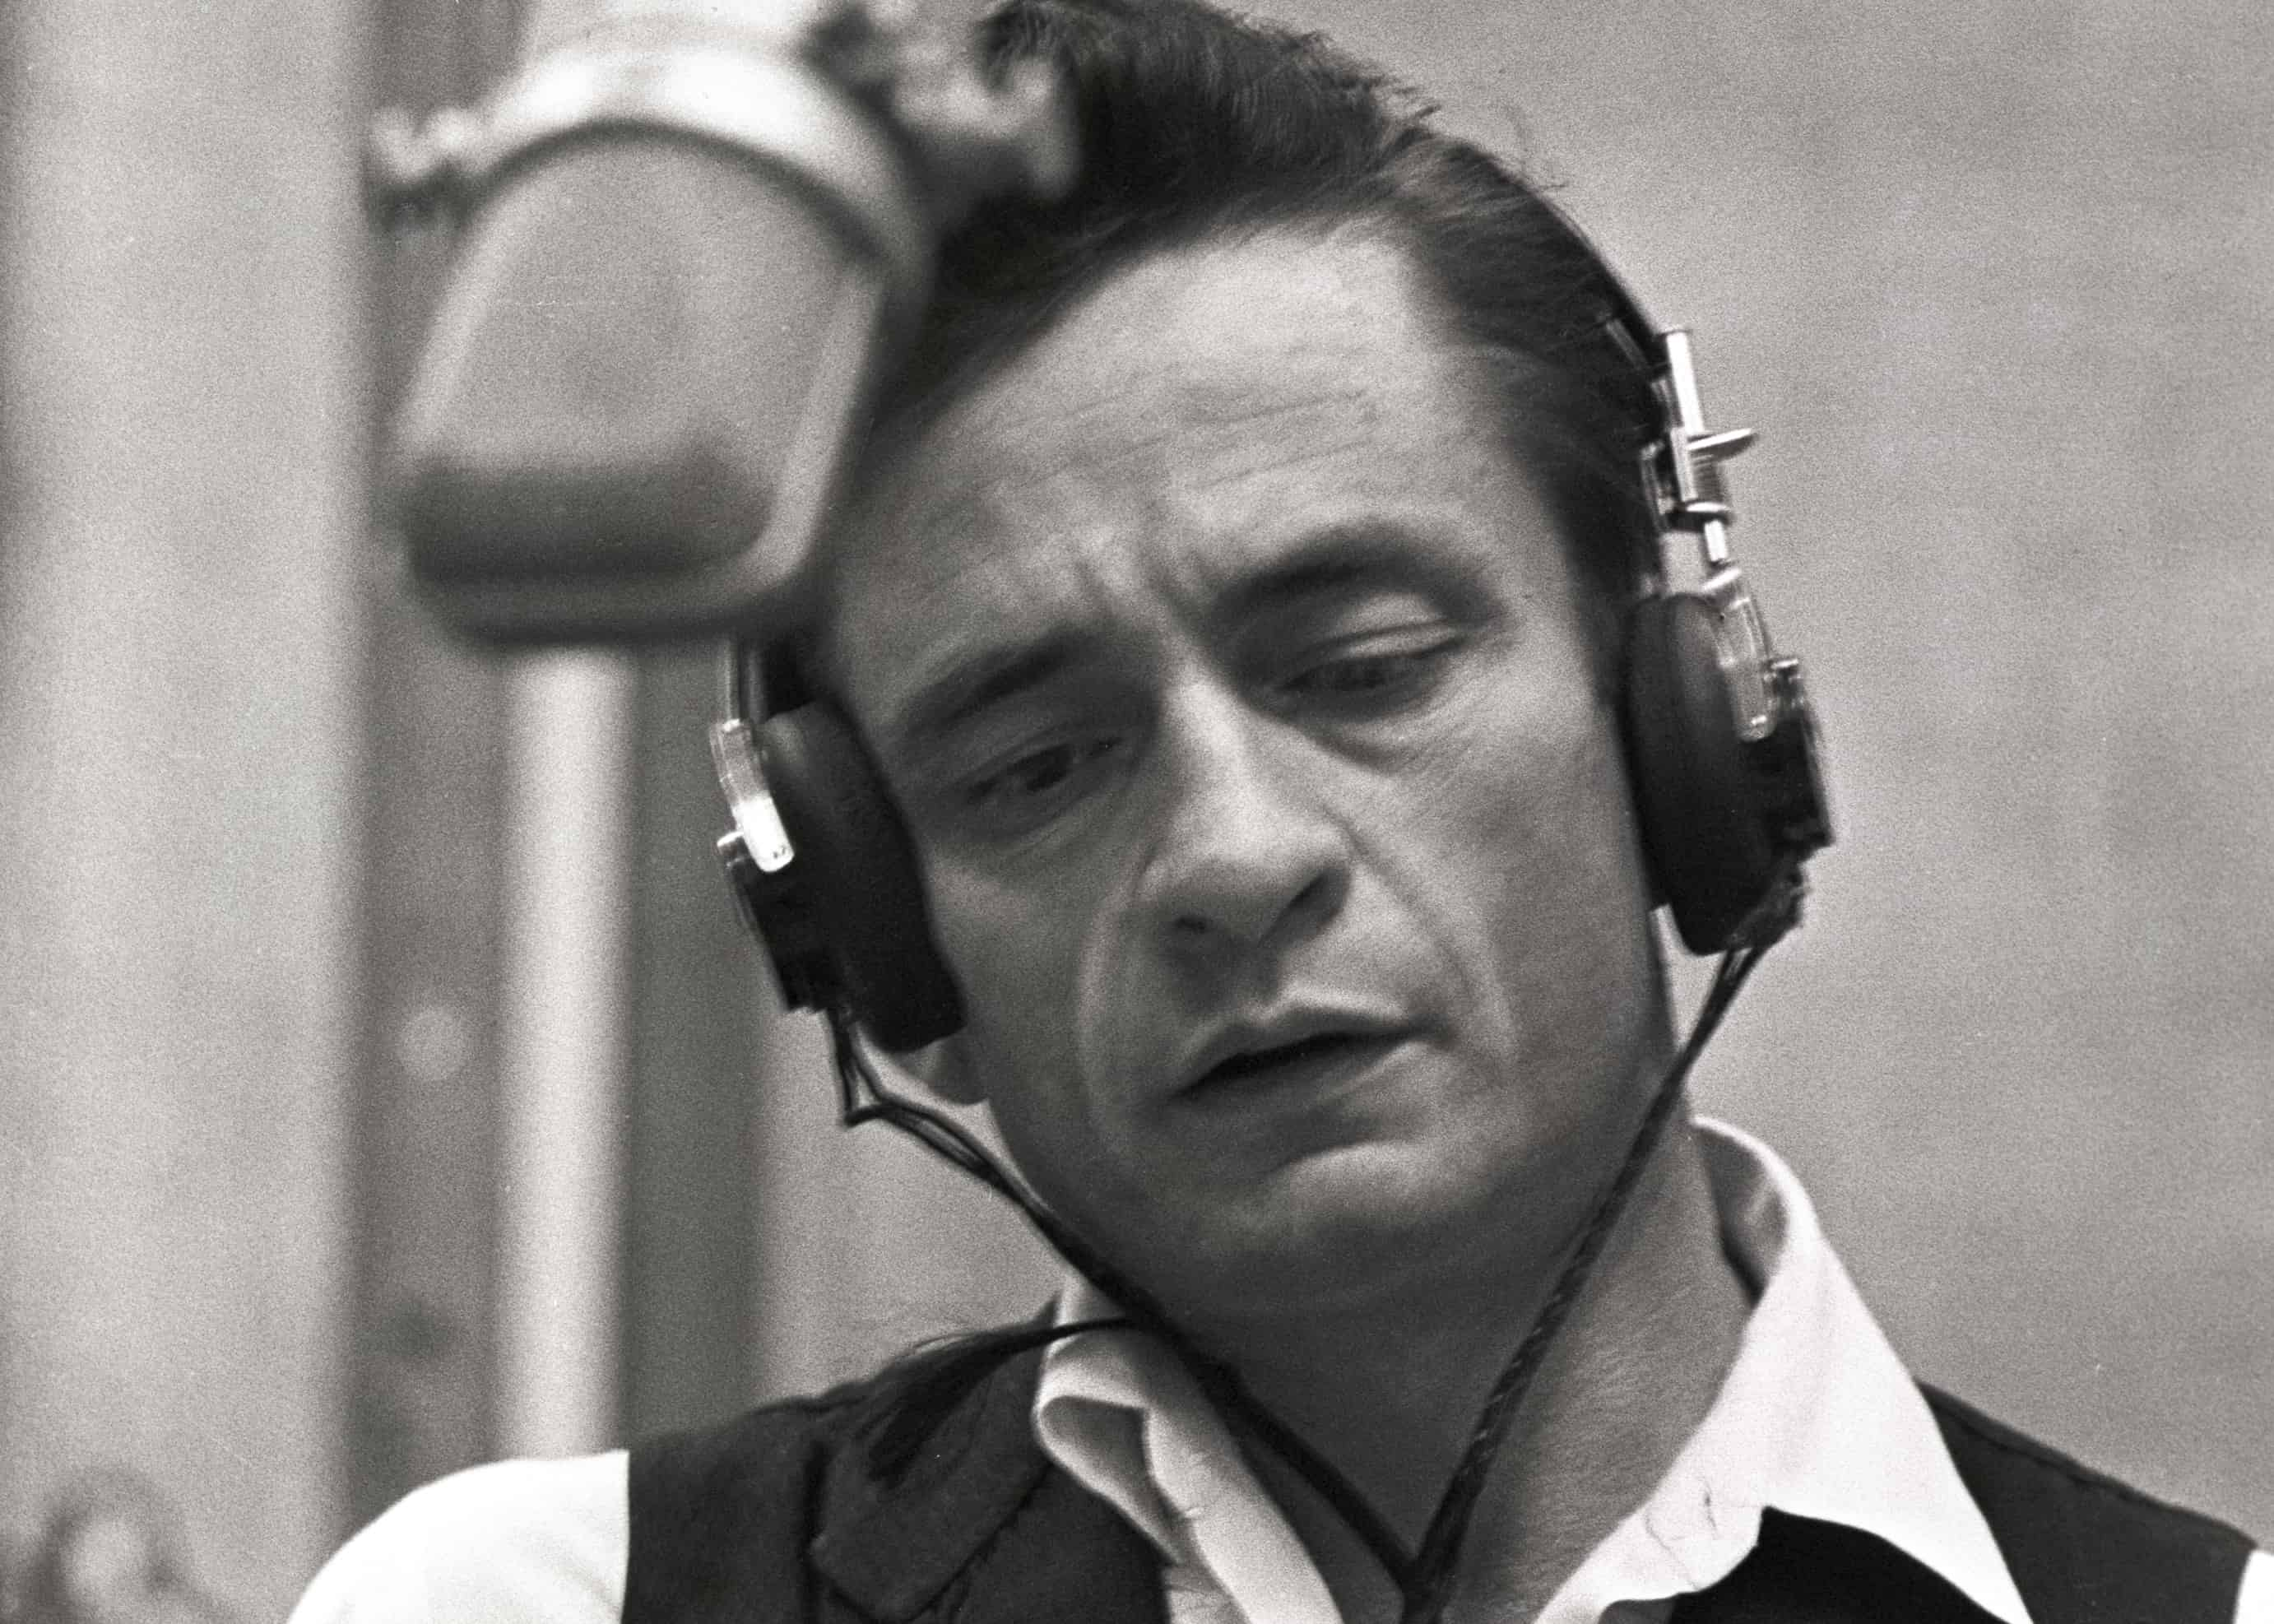 7. The Gift: The Journey of Johnny Cash